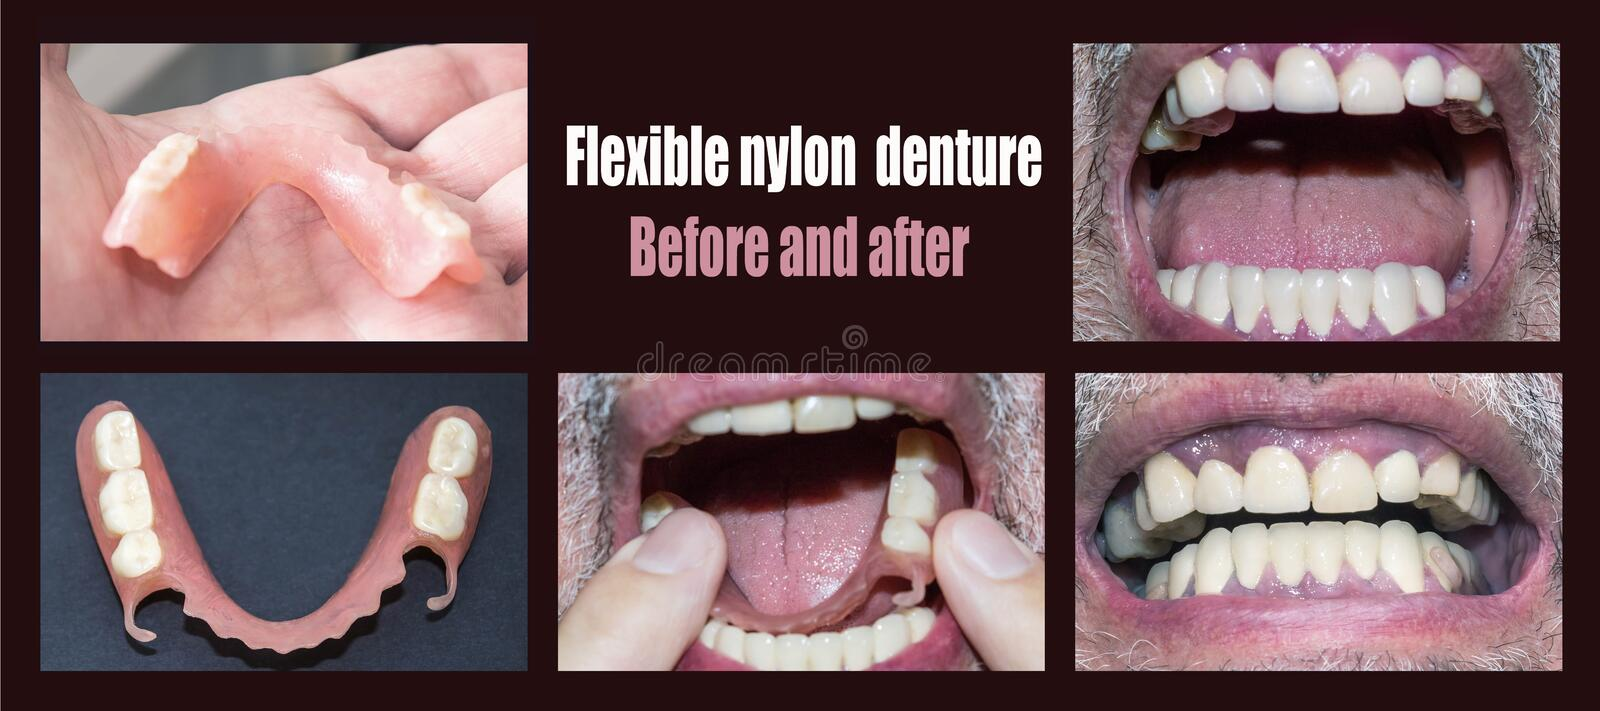 Dental rehabilitation with upper and lower prosthesis, before and after treatment. Dental rehabilitation with lower flexible nylon denture, before and after stock photography